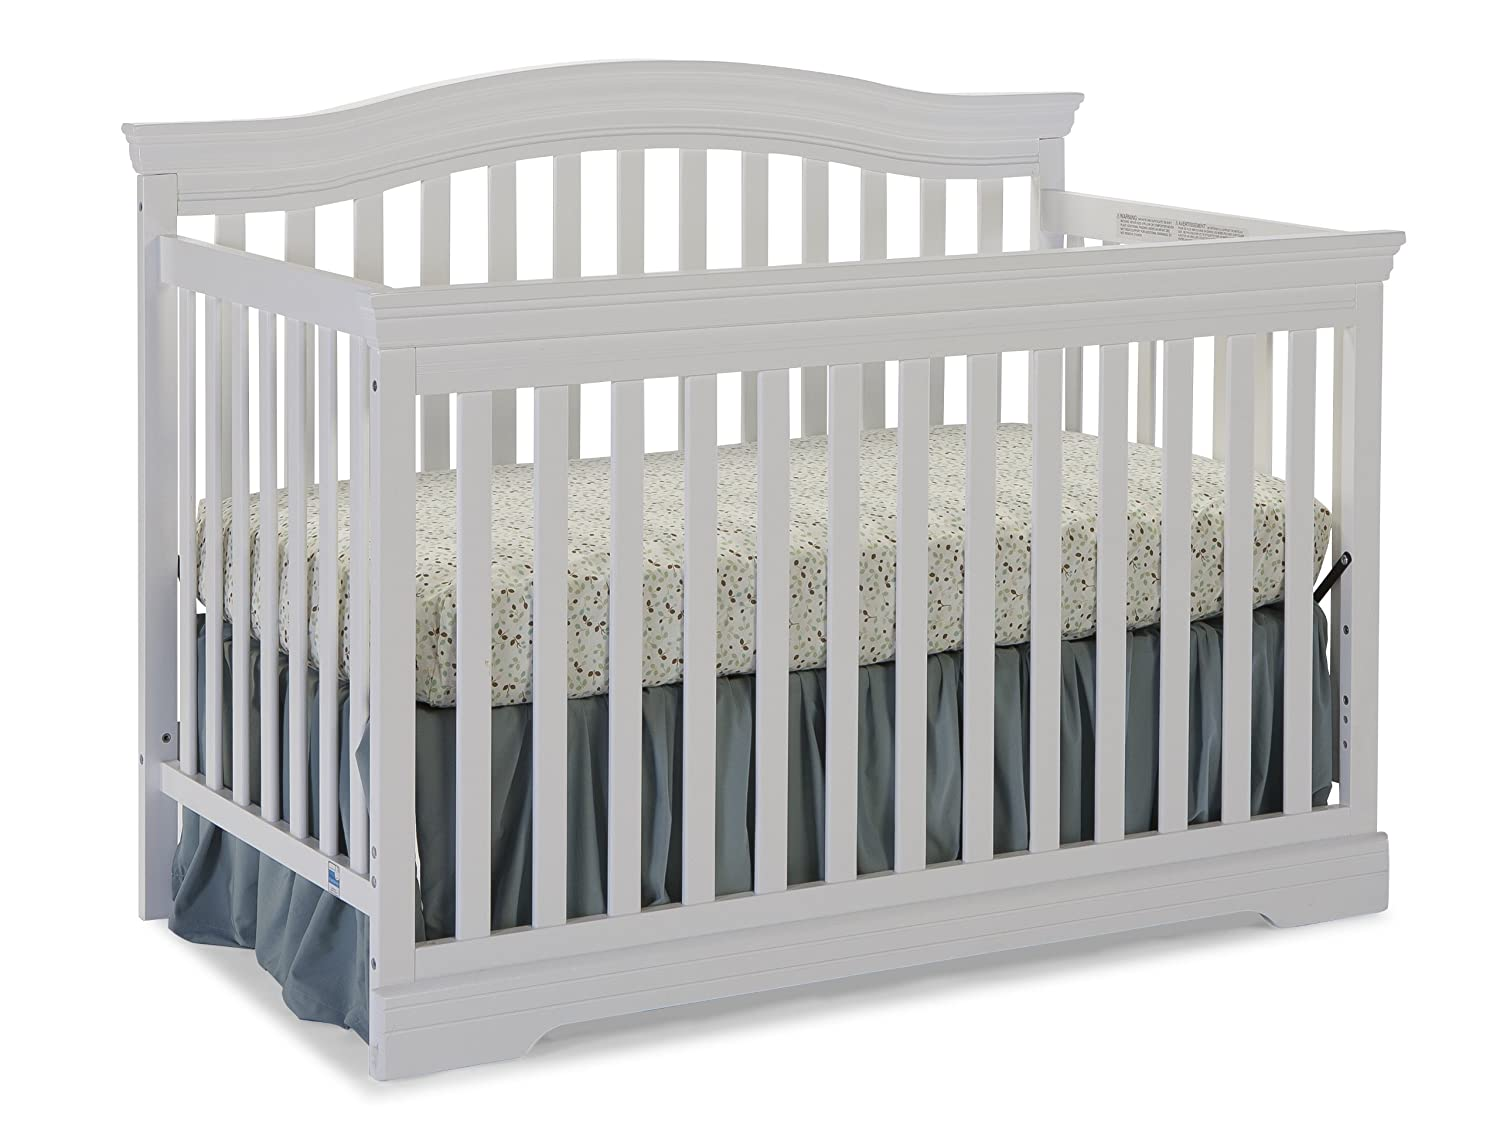 Broyhill Kids Bowen Heights 4 in 1 Convertible Crib